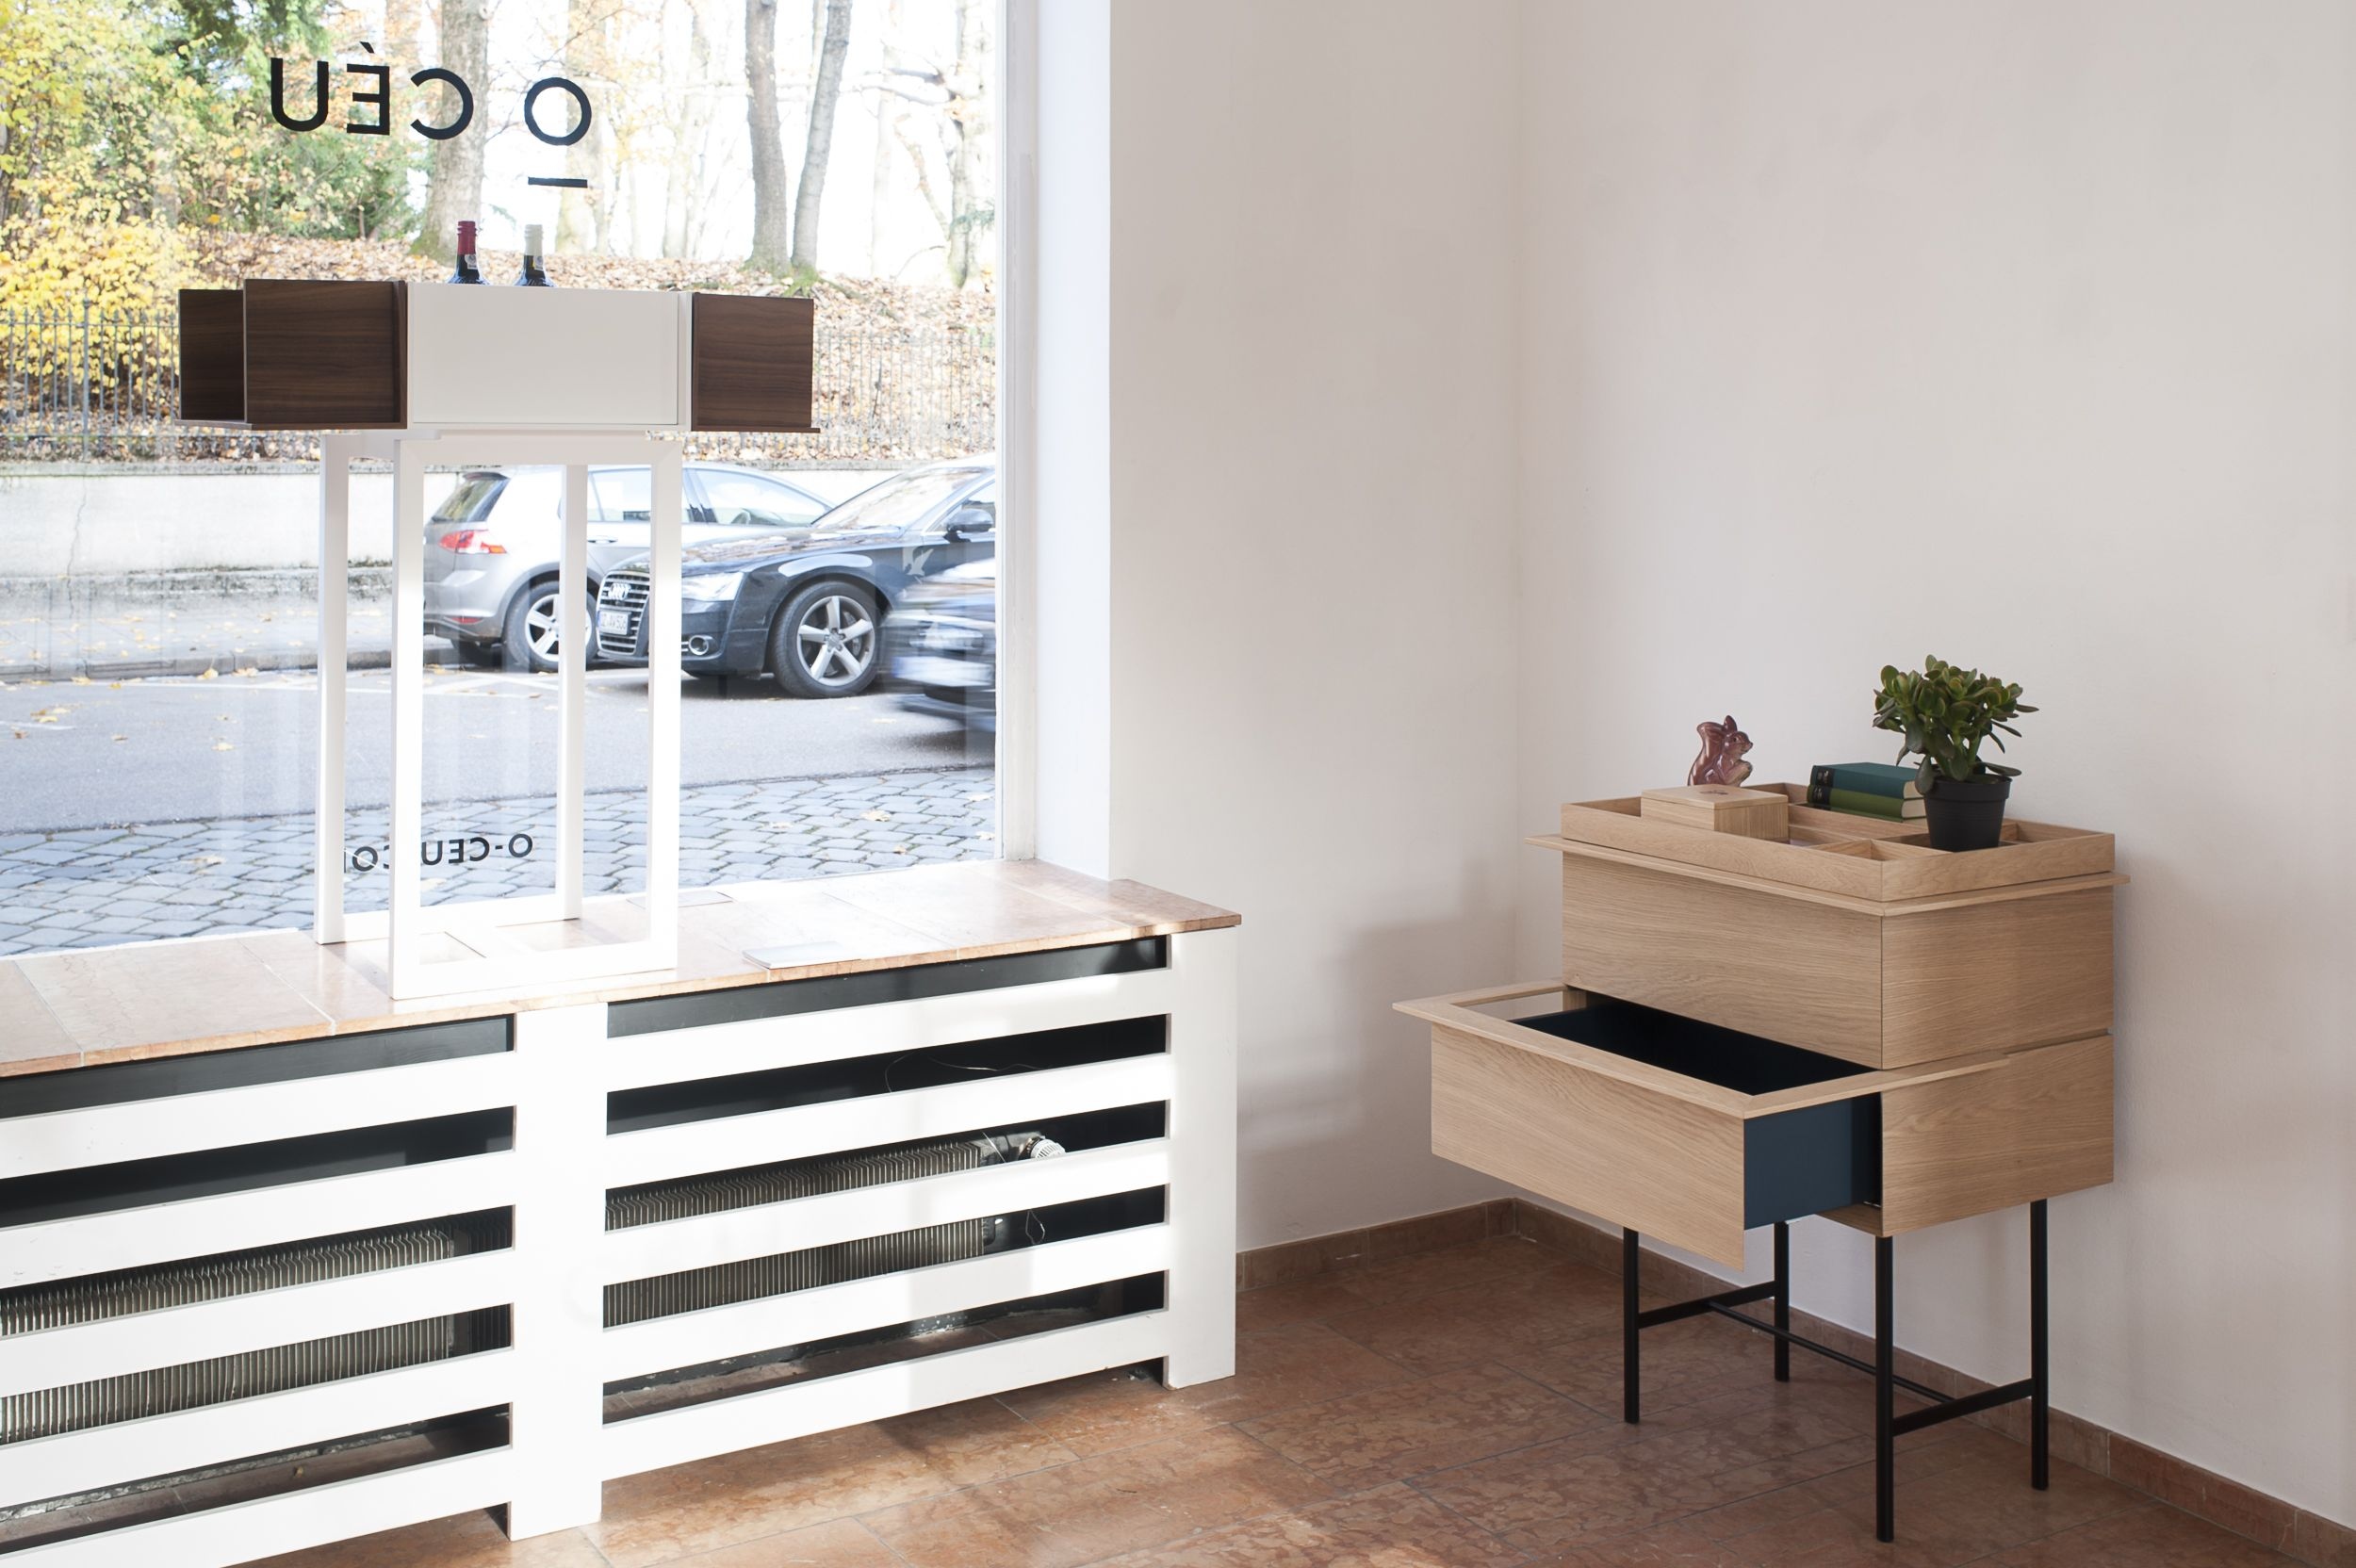 Collage S Sideboard And Douro Bar Cabinet At Our Popupstore